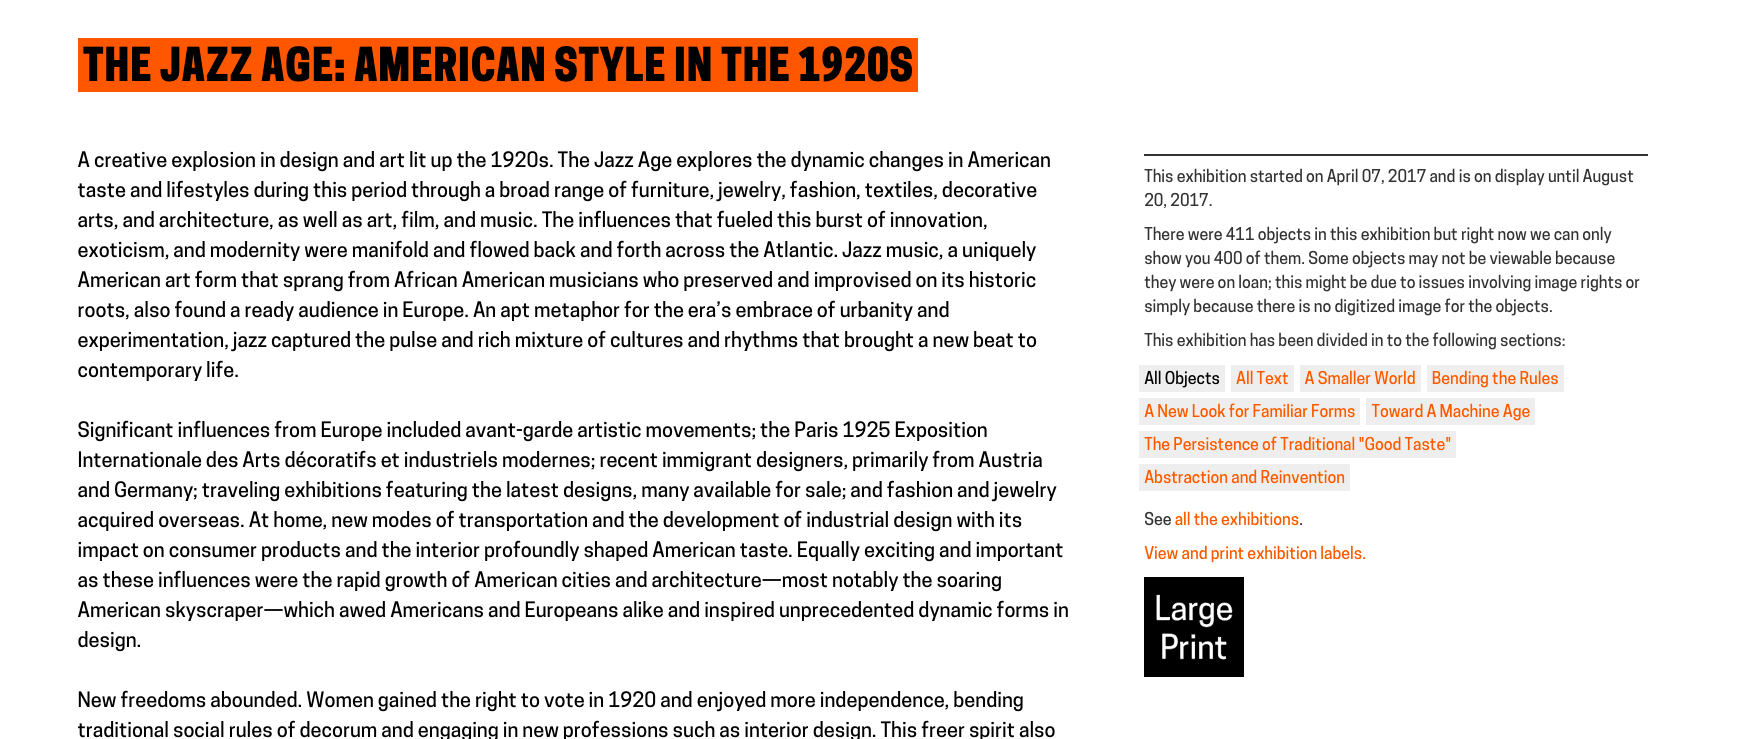 hight resolution of image of a web screenshot depicting large print label link heading reads exhibition title the